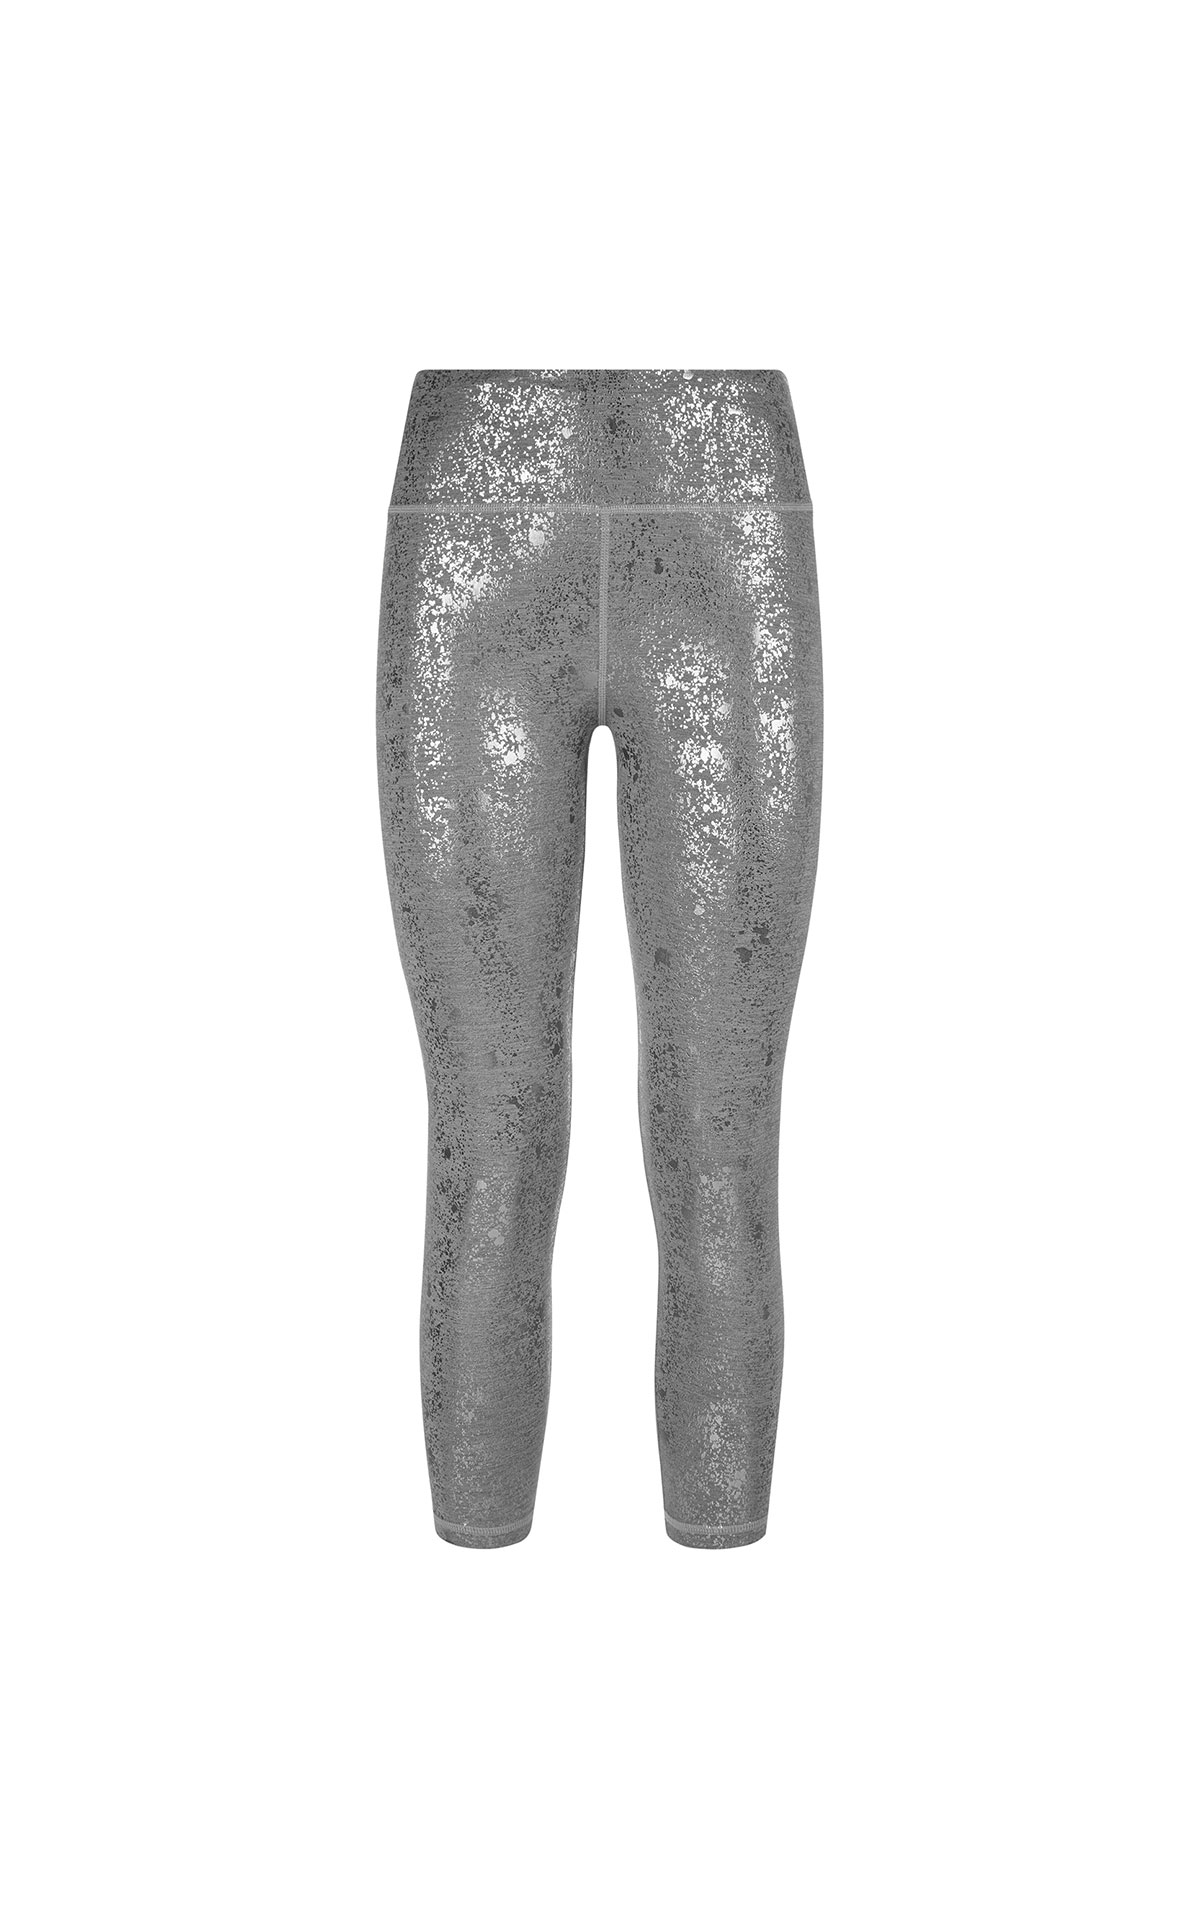 Sweaty Betty Contour foil 7/8 workout leggings from Bicester Village